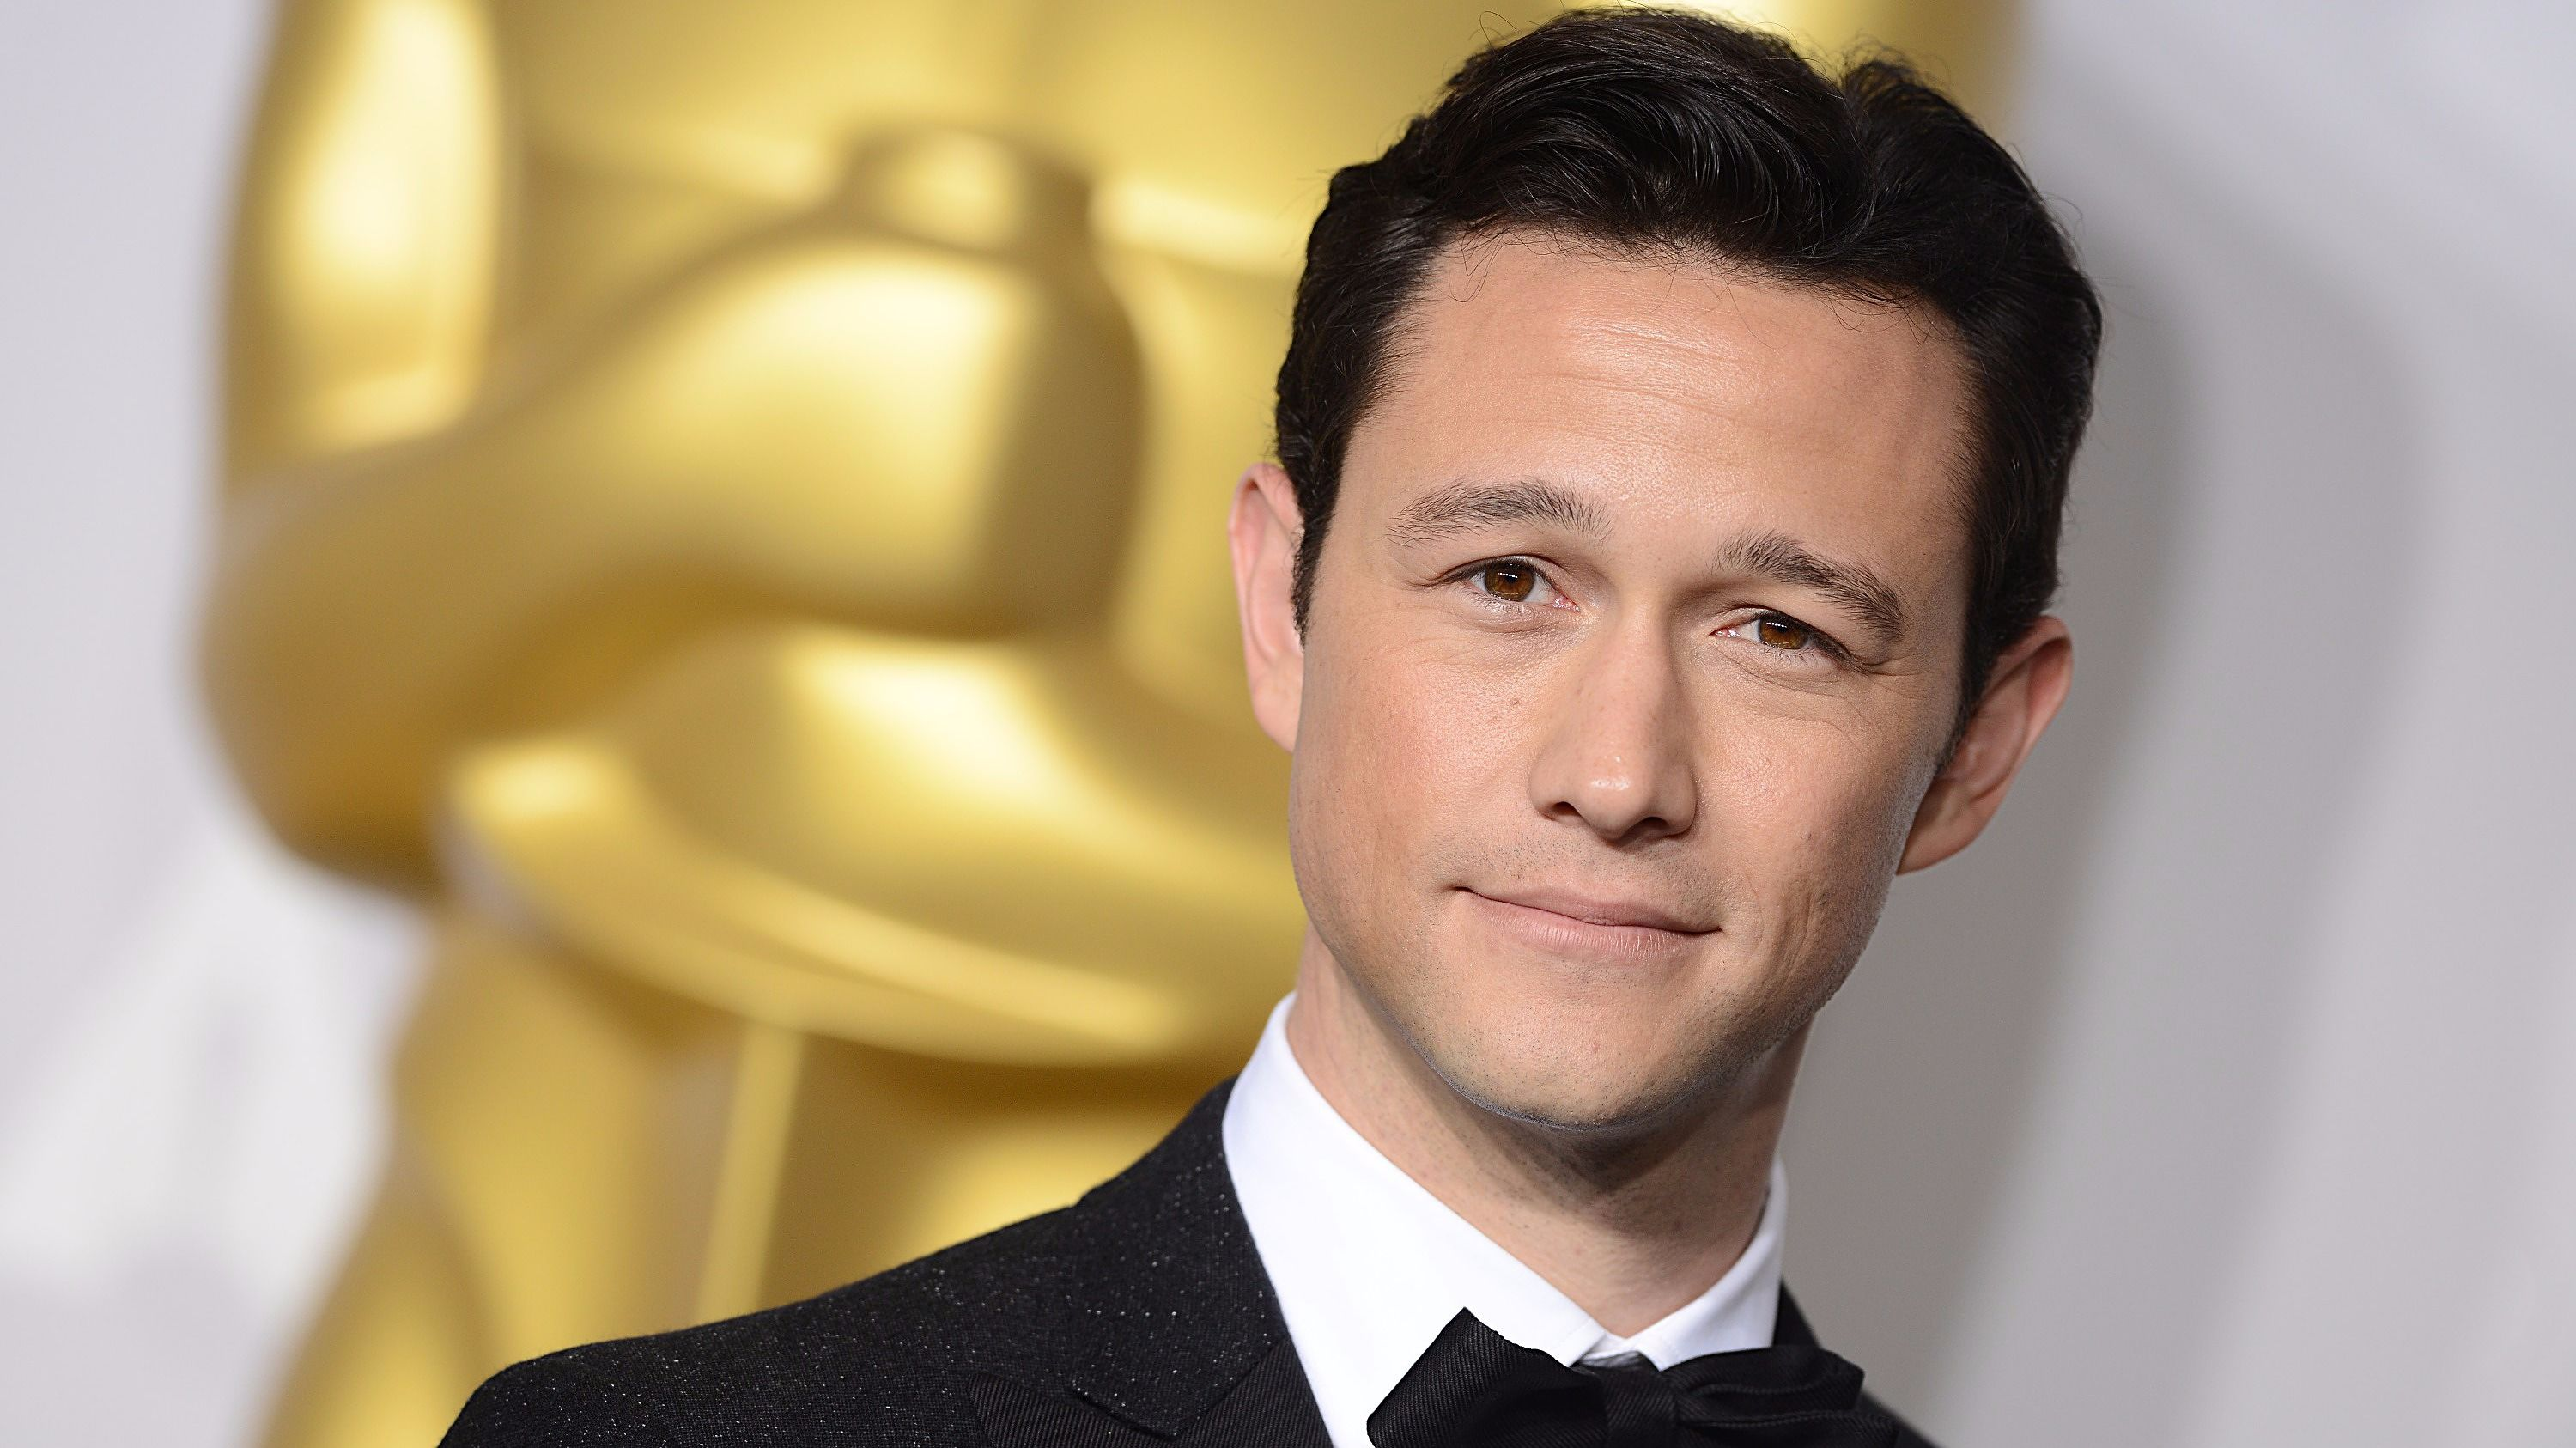 Joseph Gordon-Levitt Widescreen for desktop